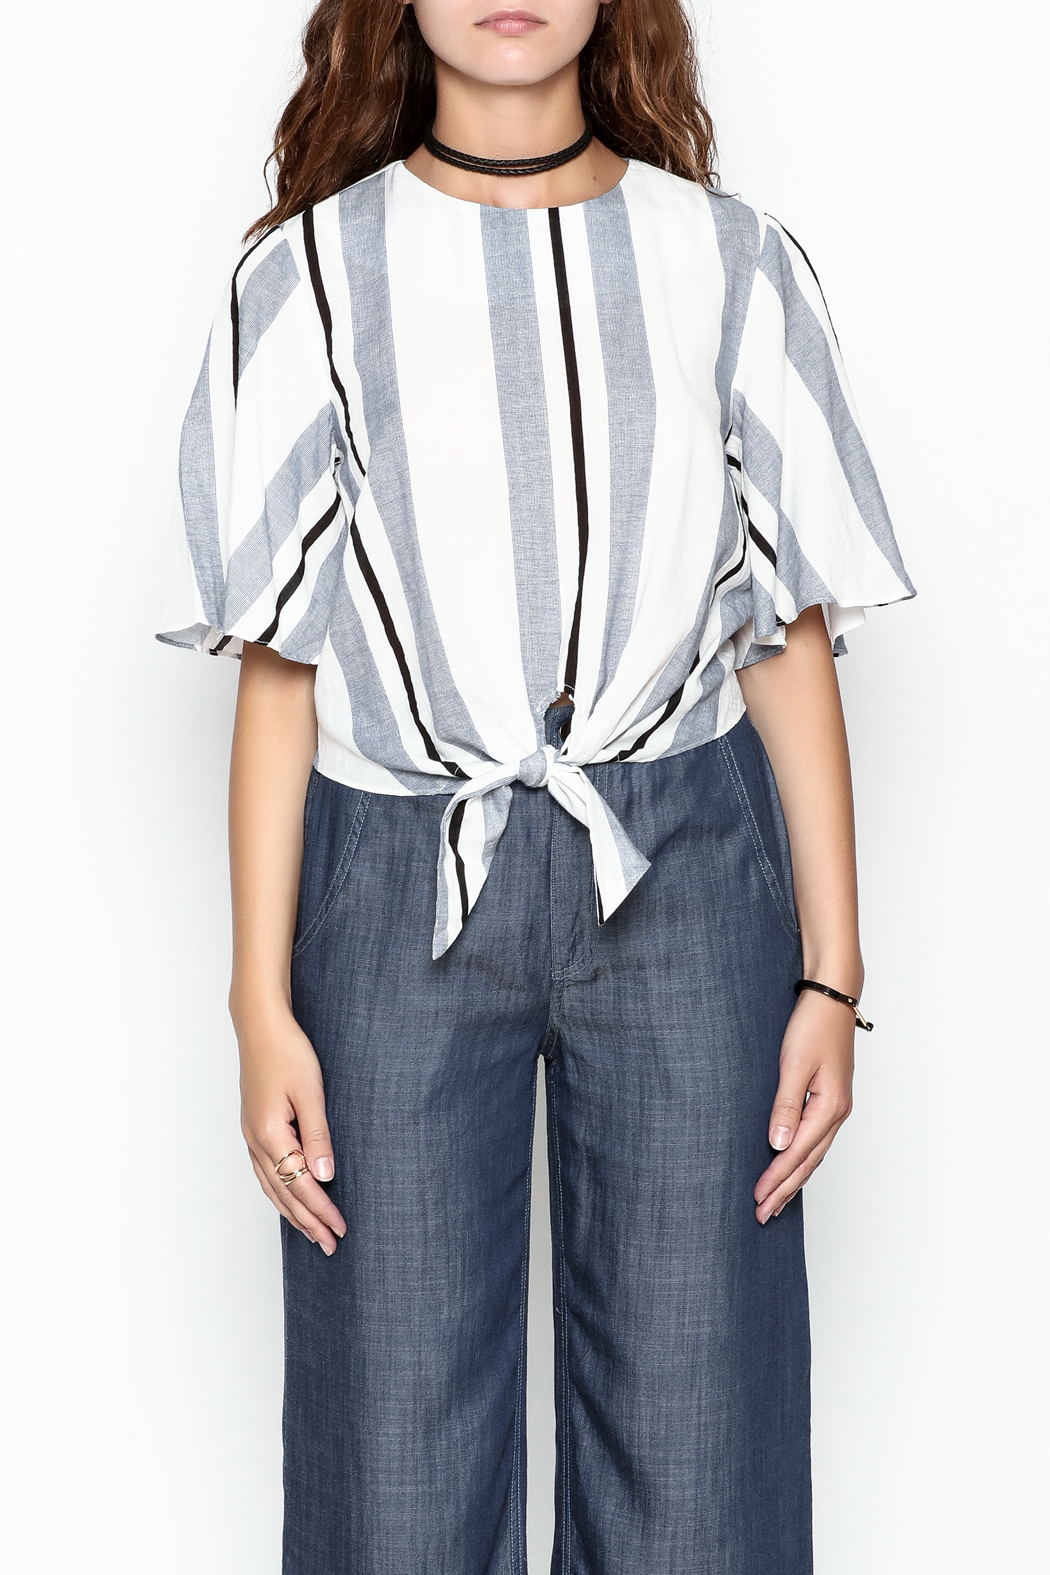 Lumiere Stripe Knot Top - Front Full Image